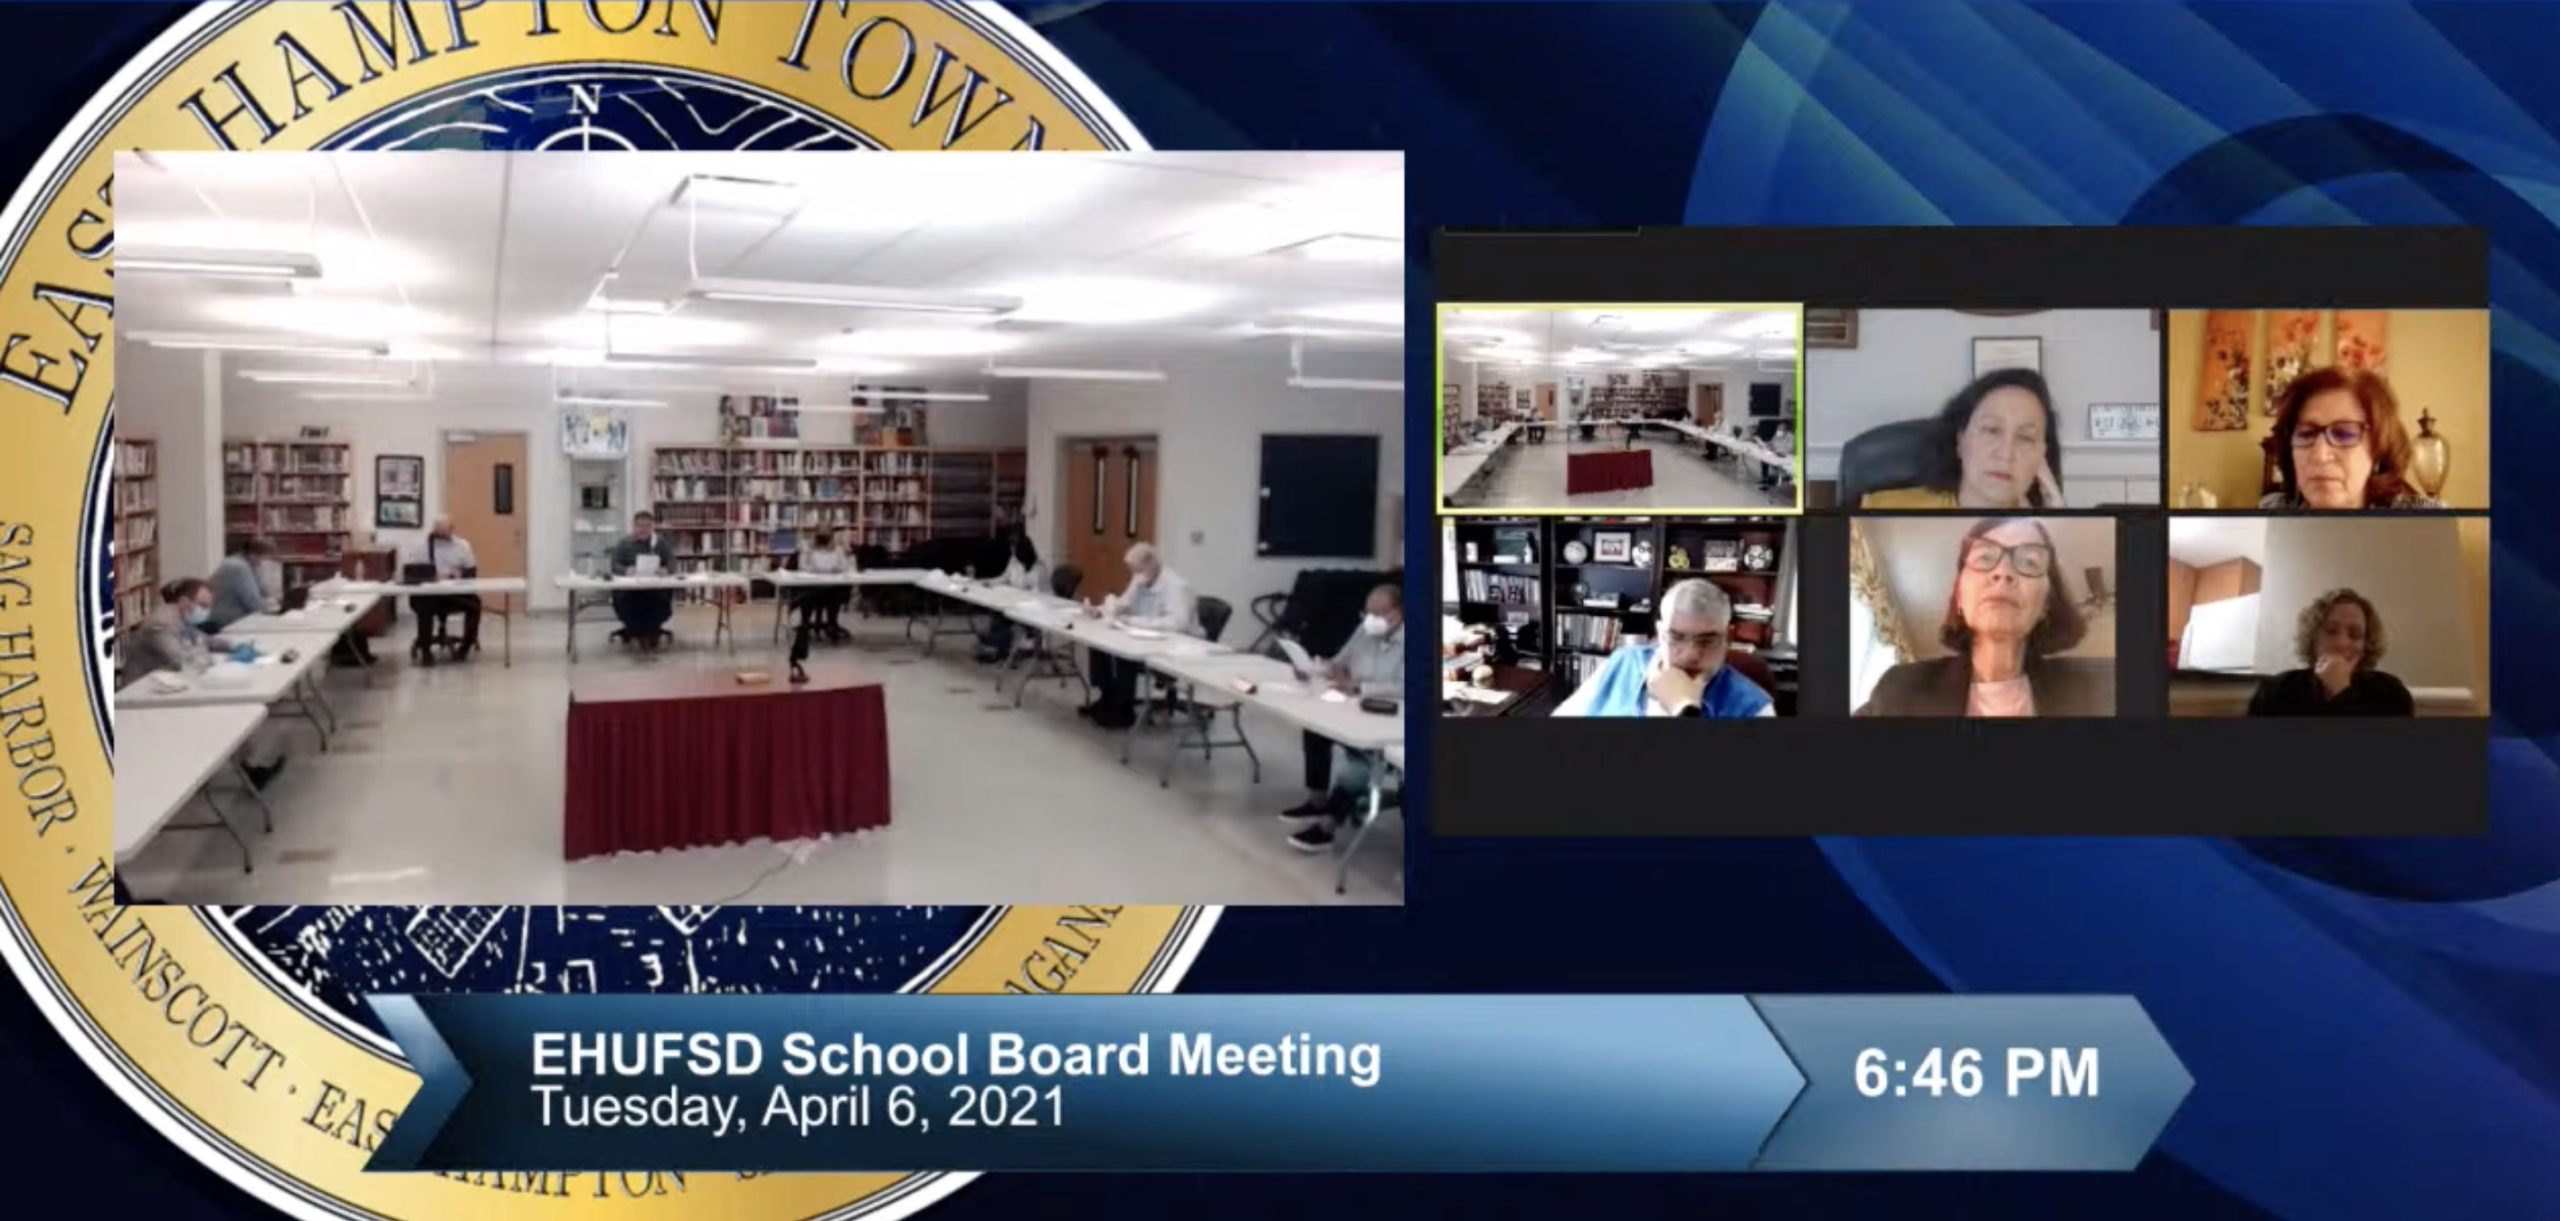 On Tuesday, the East Hampton Schools Board of Education discussed creating an alumni event for 2020 graduates.